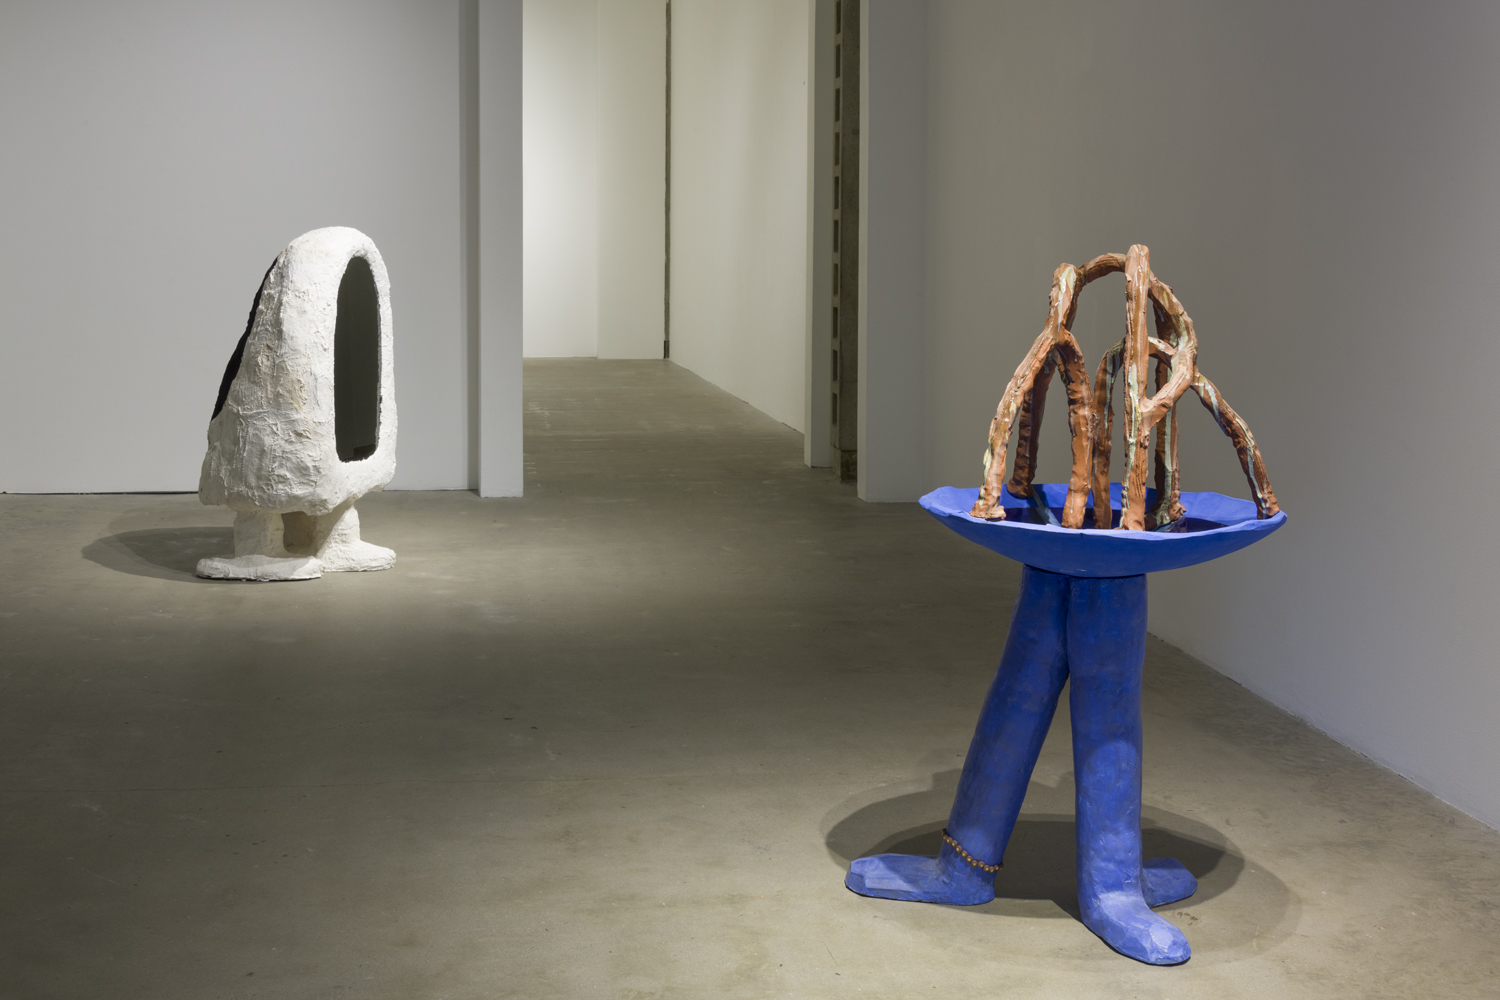 The two artwork sculptures by the artist Anna Sew Hoy depict amorphous figures. One of the figures is blue with three legs with a bird bath on top, and the other figure has two legs and a black mirror front.